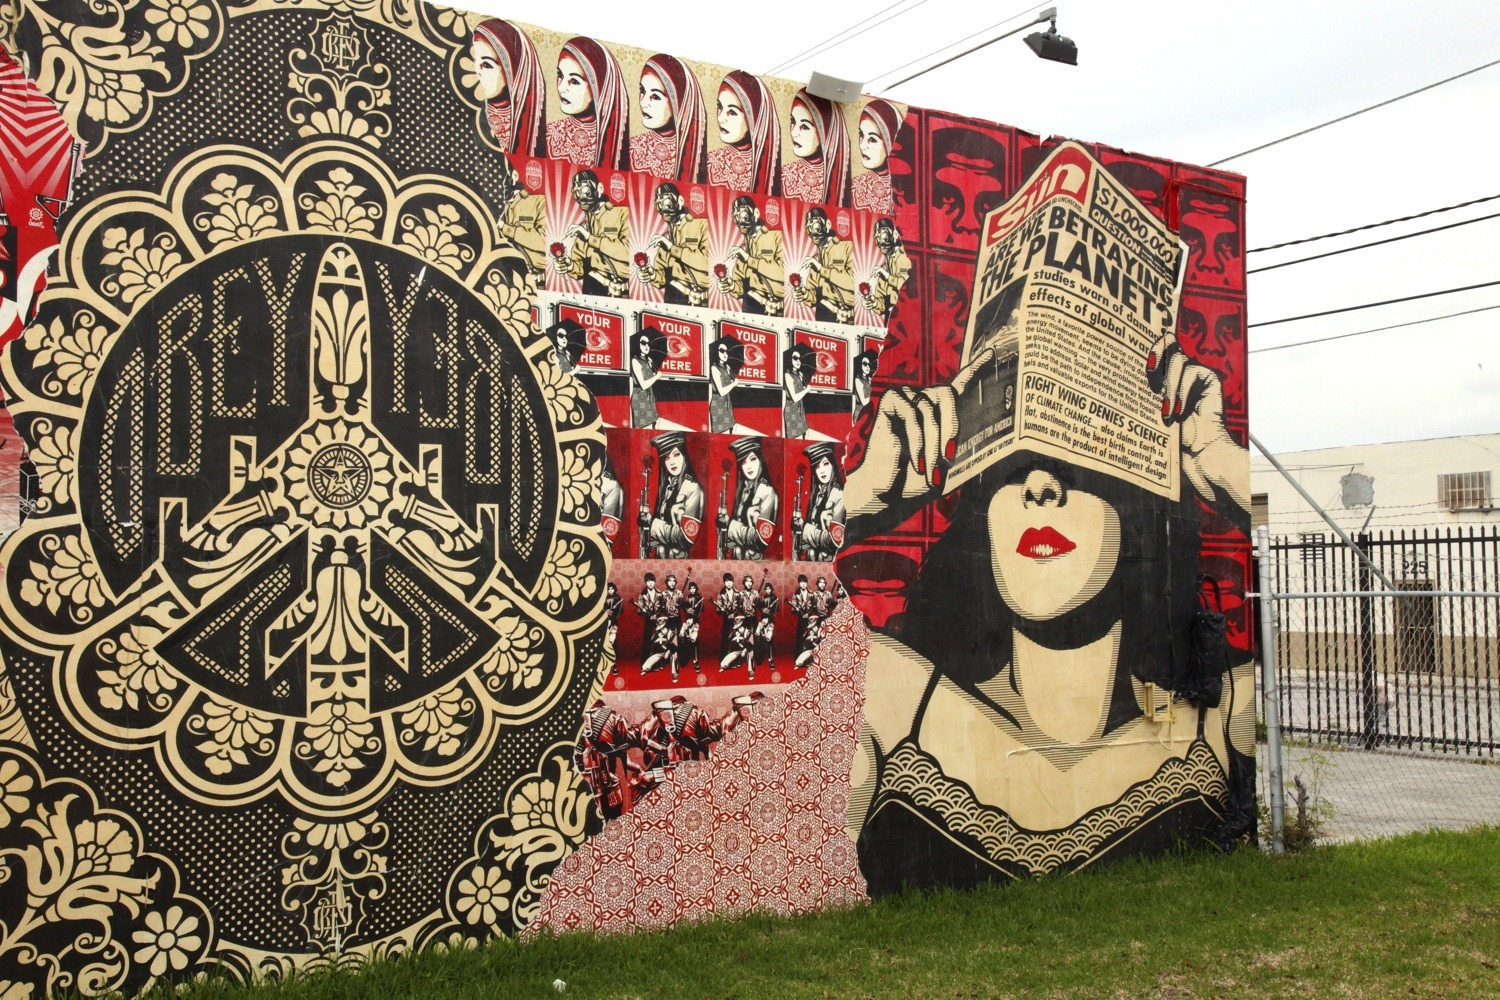 Wynwood Walls in pictures